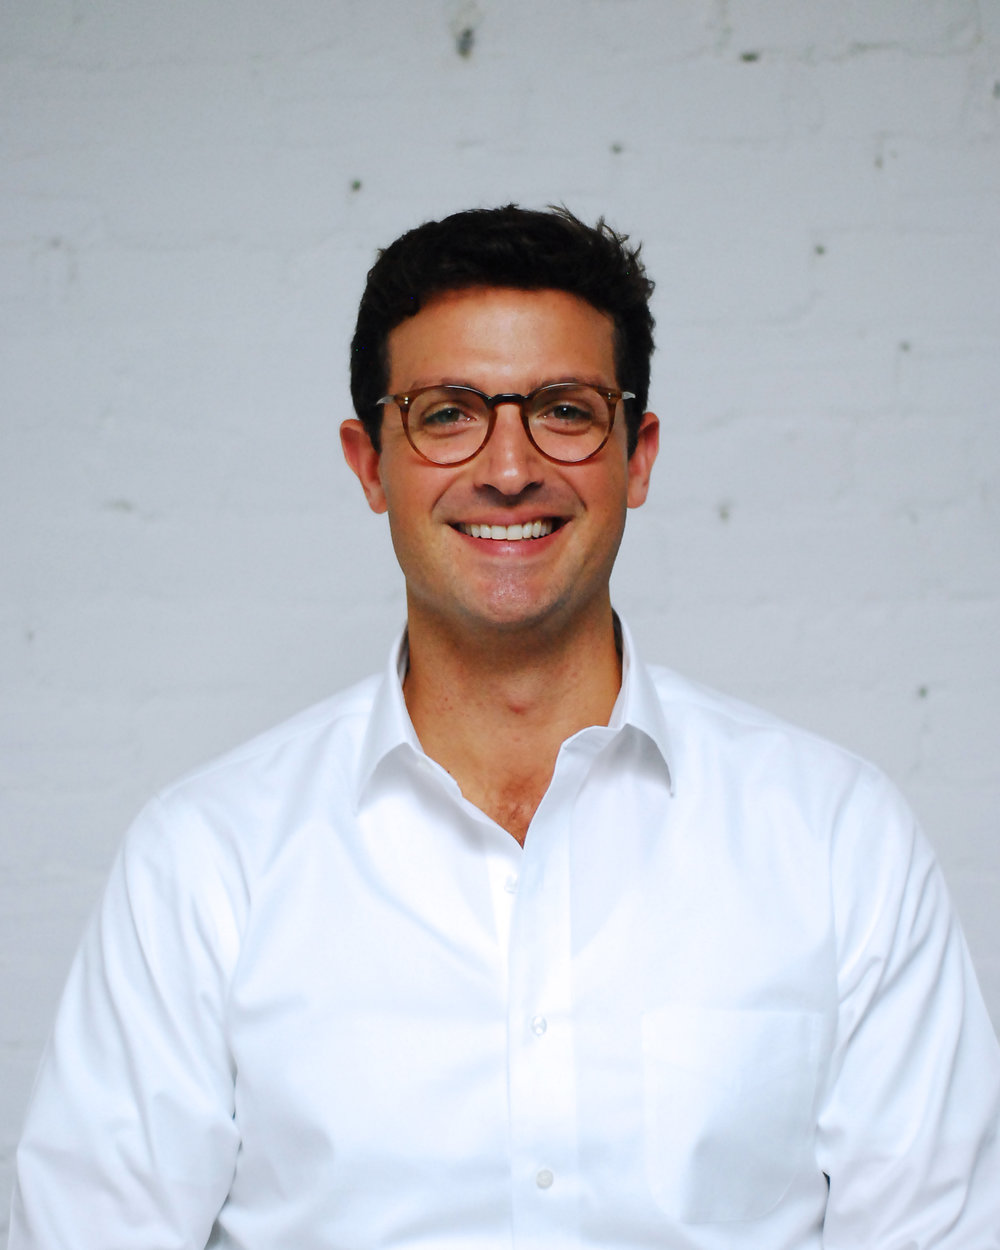 Ari Himmel - Founder and Chief Executive Officer